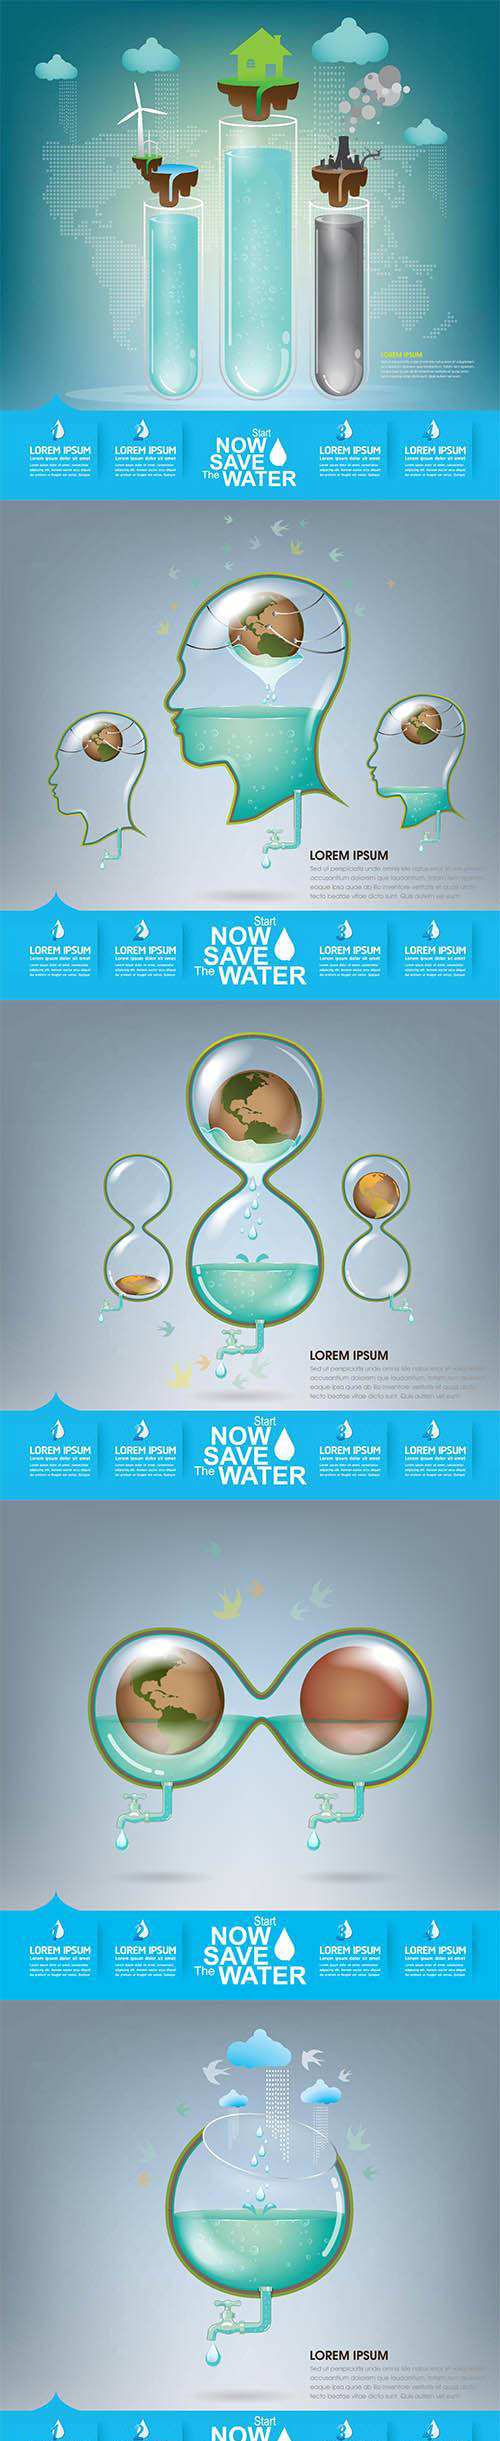 Vector Set - Save Water Illustration